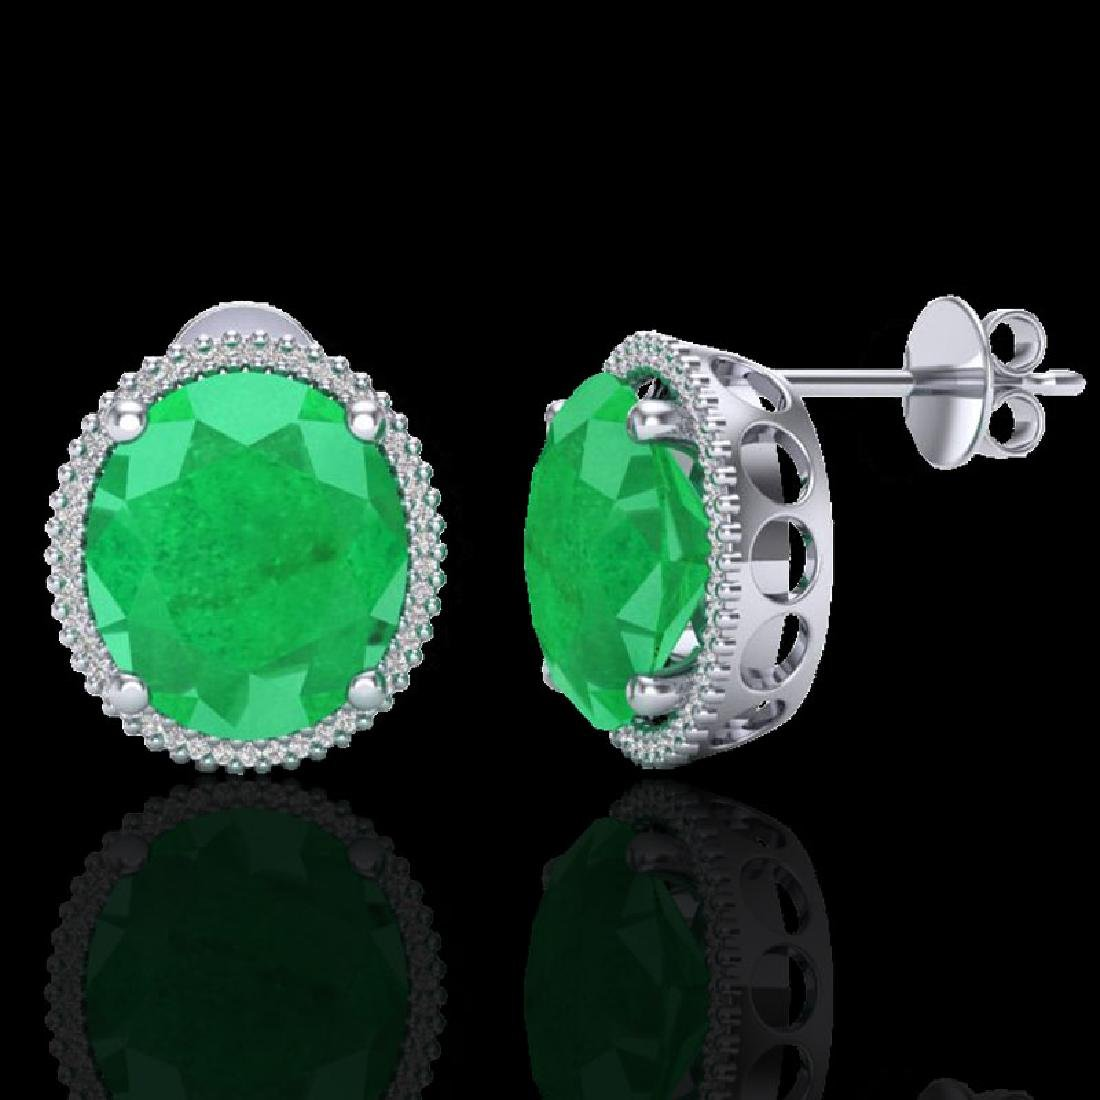 25 CTW Emerald & Micro Pave VS/SI Diamond Halo Earrings - 2